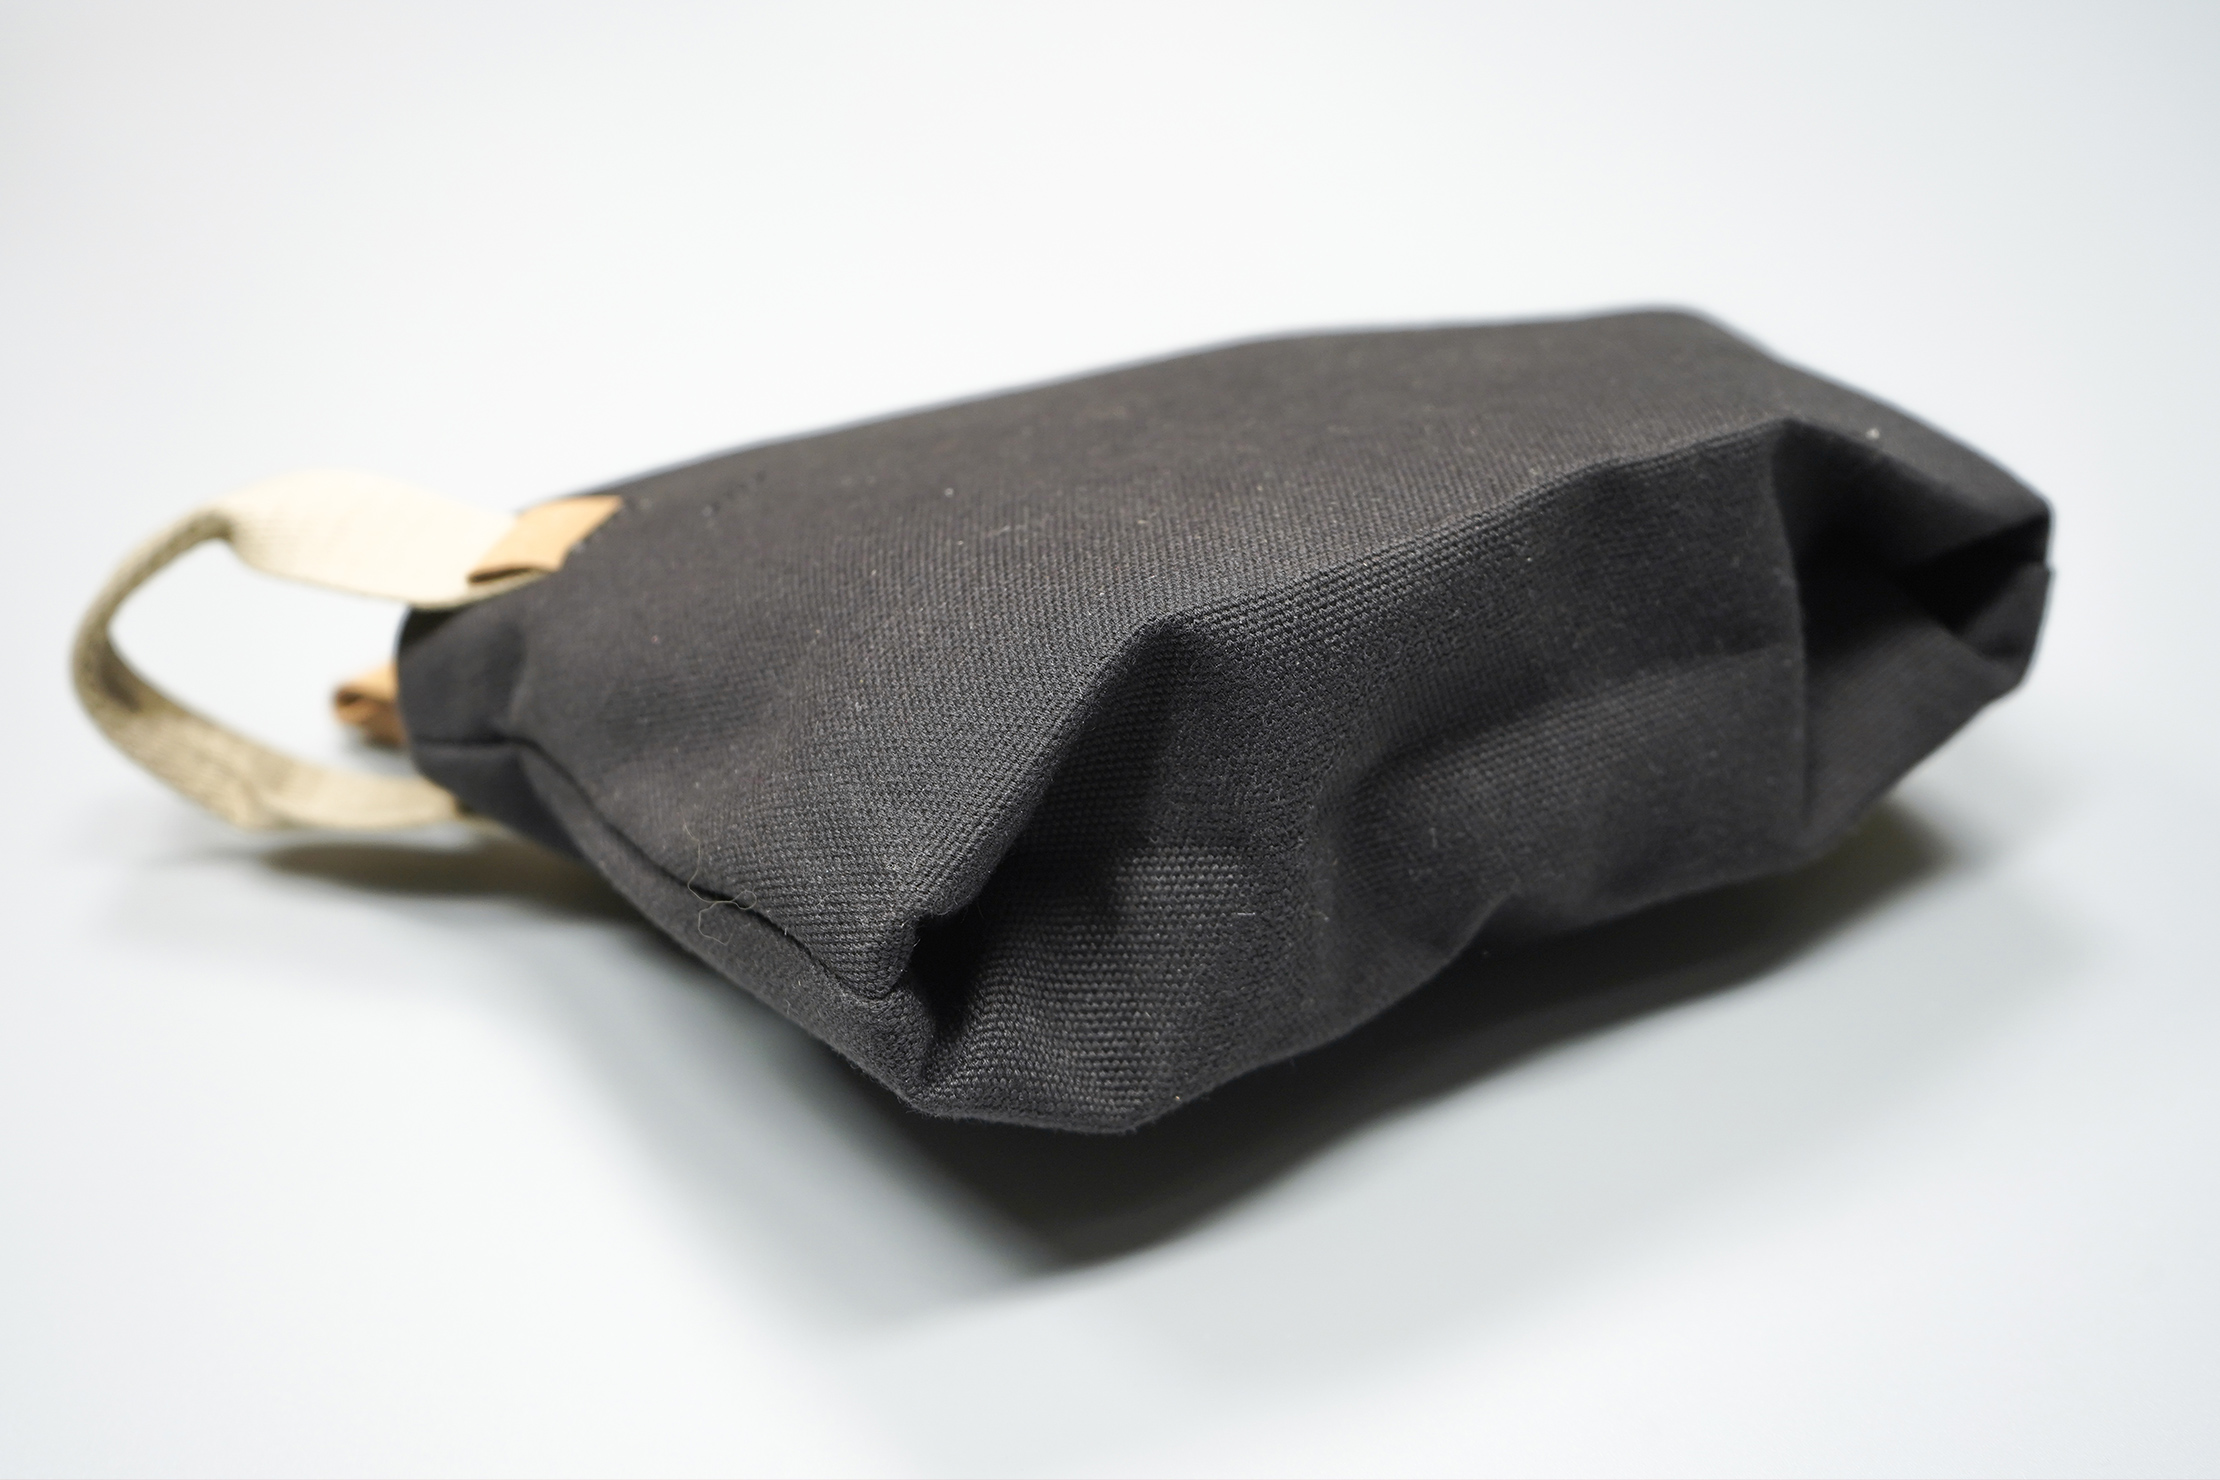 Bellroy Standing Pouch | Gussets give the pouch legs to stand on